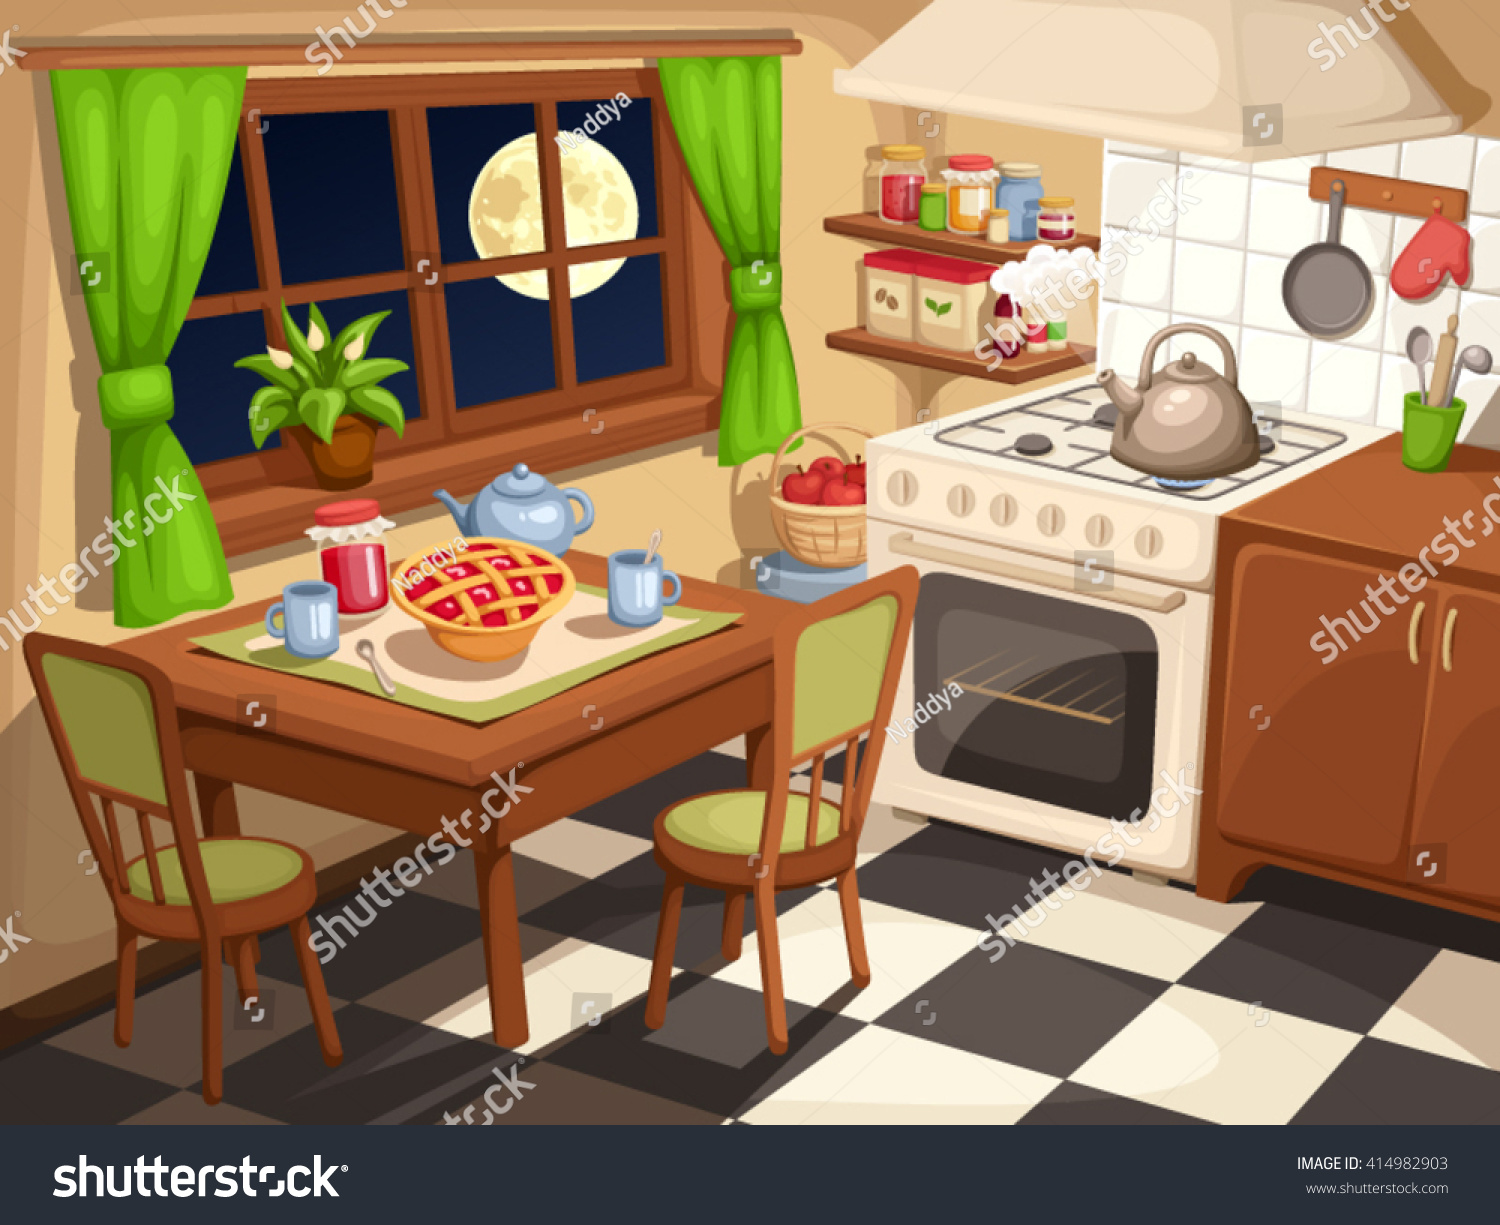 Cartoon kitchen with cabinets and window vector art illustration - Vector Illustration Of An Evening Kitchen Interior With Laid Table And A Kettle On A Stove